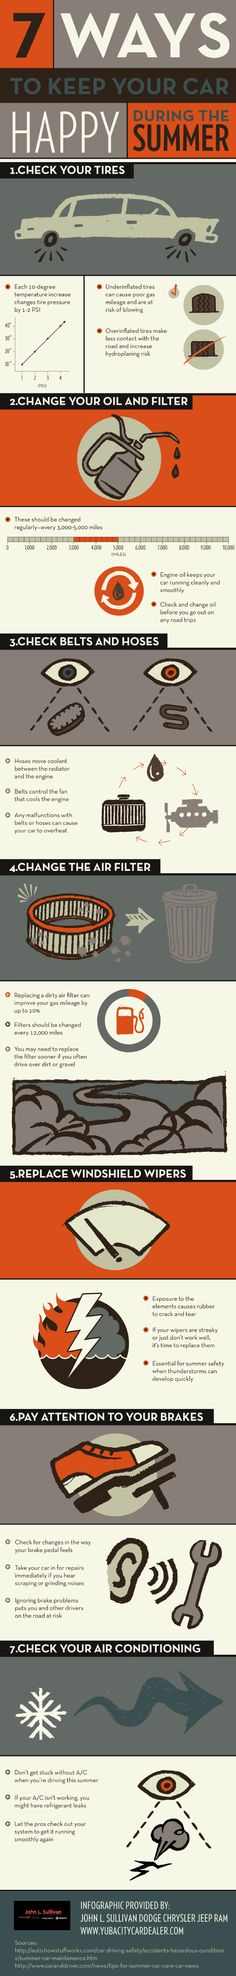 If noticed a decrease in your gas mileage, it may be time for a new air filter. Replacing a dirty air filter can improve your gas mileage by up to Check out this Yuba City Dodge dealership infographic for other car efficiency tips. Dodge Dealership, Car Facts, Car Care Tips, Life Car, Driving Tips, Car Cleaning, Take Care Of Yourself, Canada, Yuba City